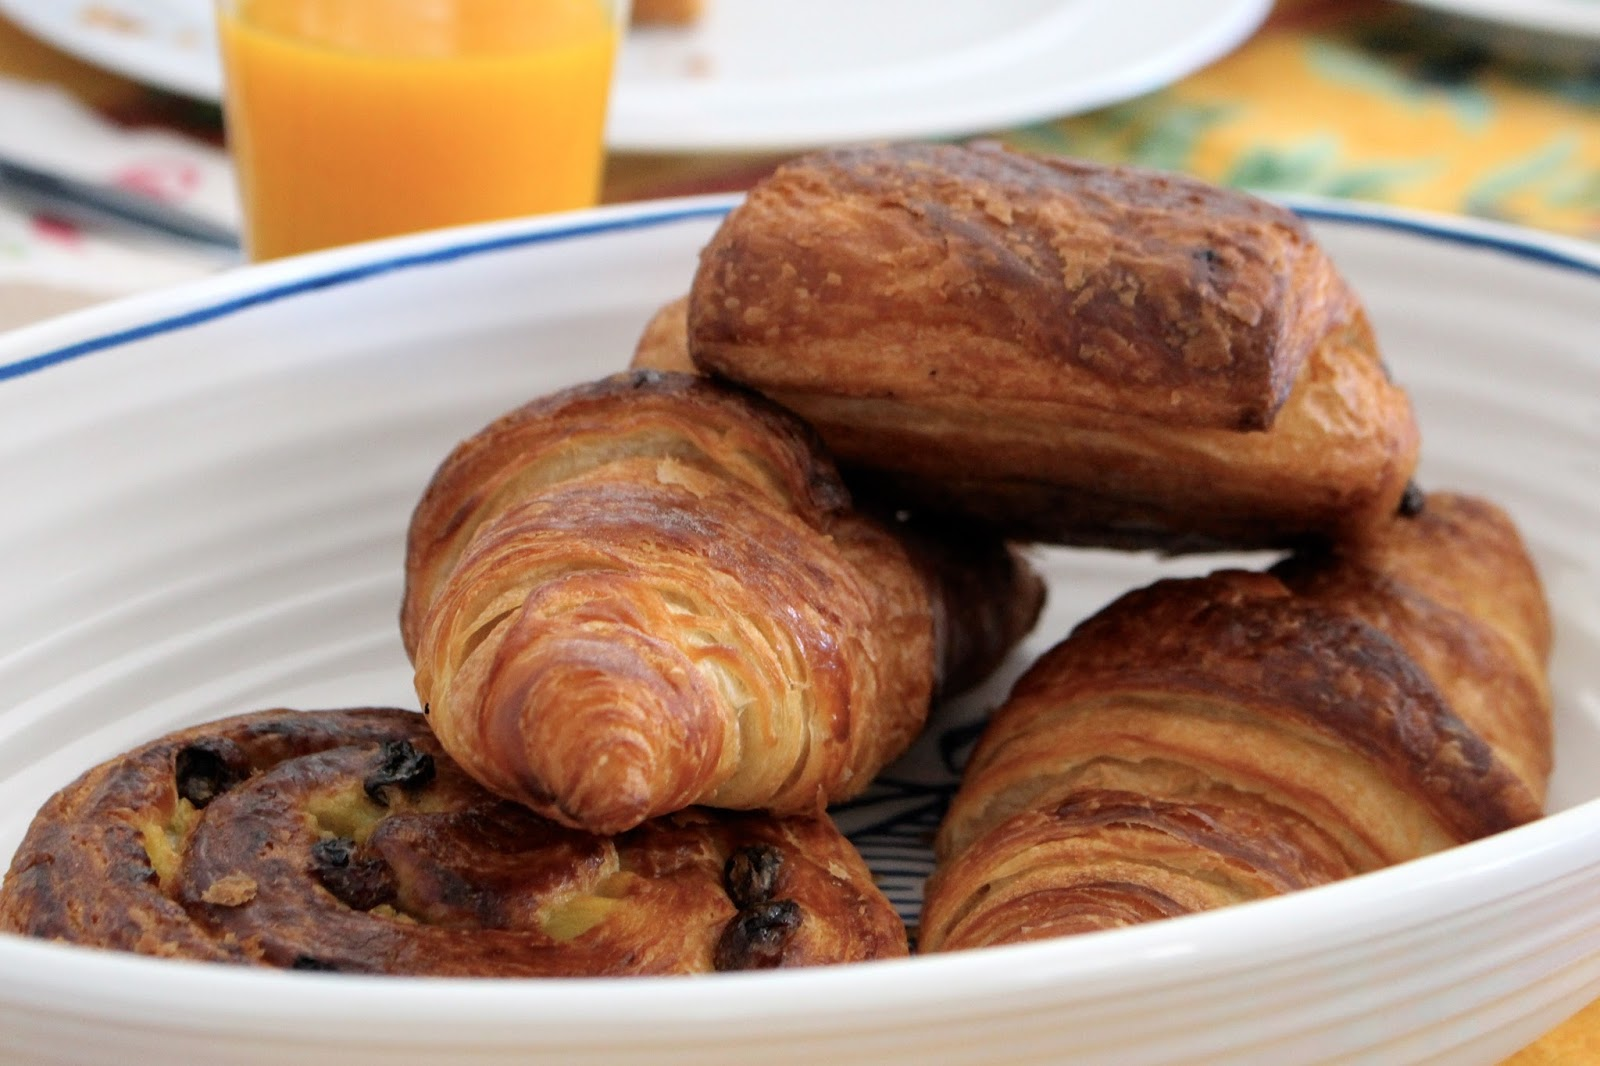 Bowl of pastries for breakfast in France